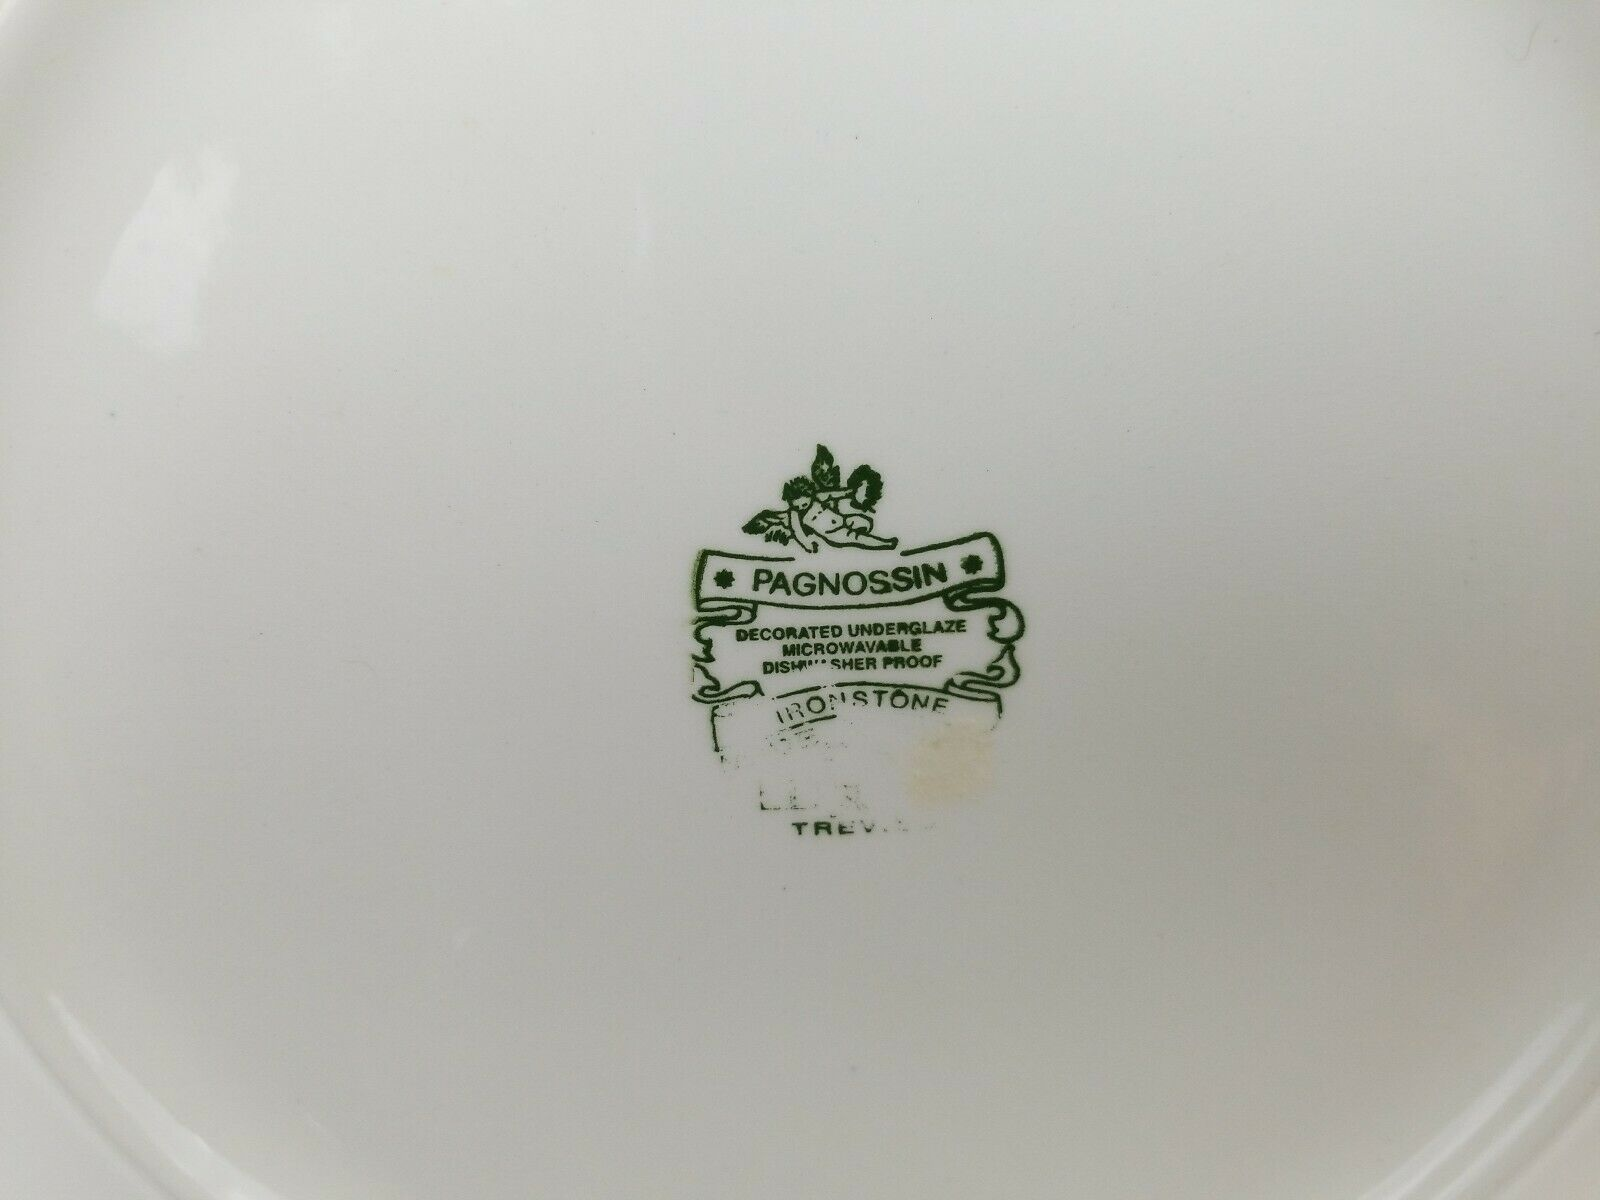 """Pagnossin Trevisco Dinner Plate 10 5/8"""" Ironstone Spa Rust, Italy LD06 Dish Safe image 3"""